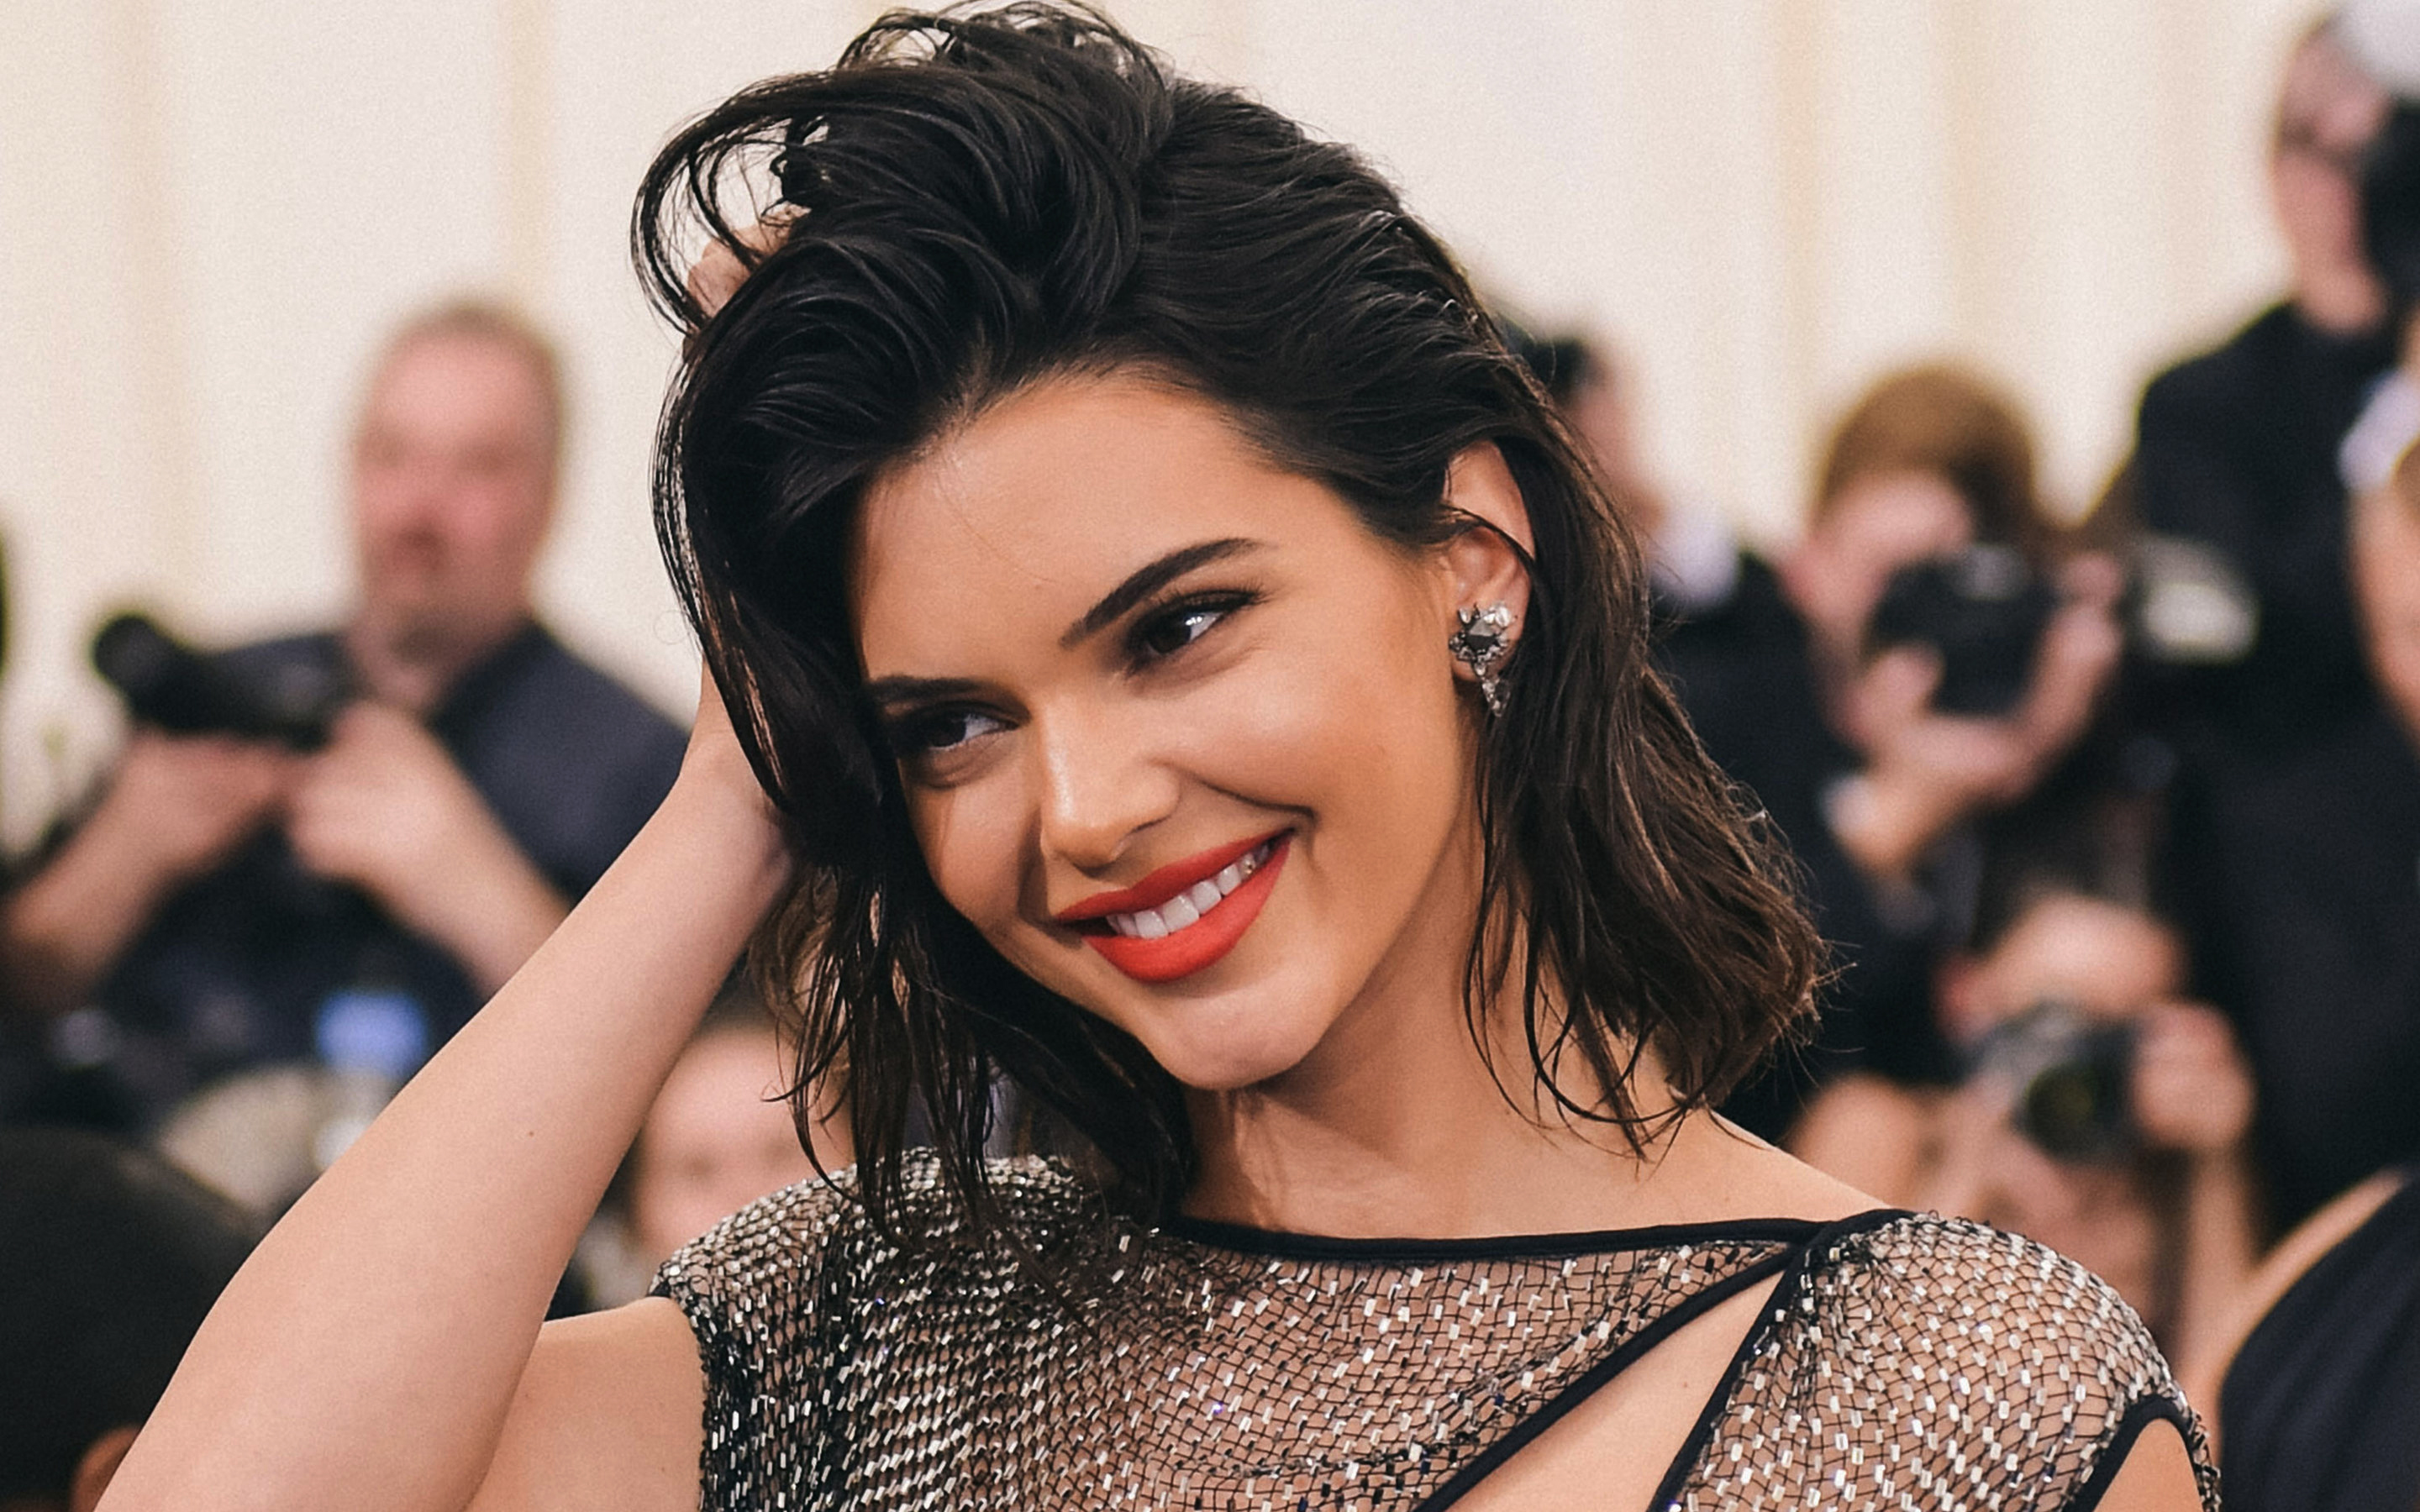 kendall jenner cute smile 4k wallpaper 2562